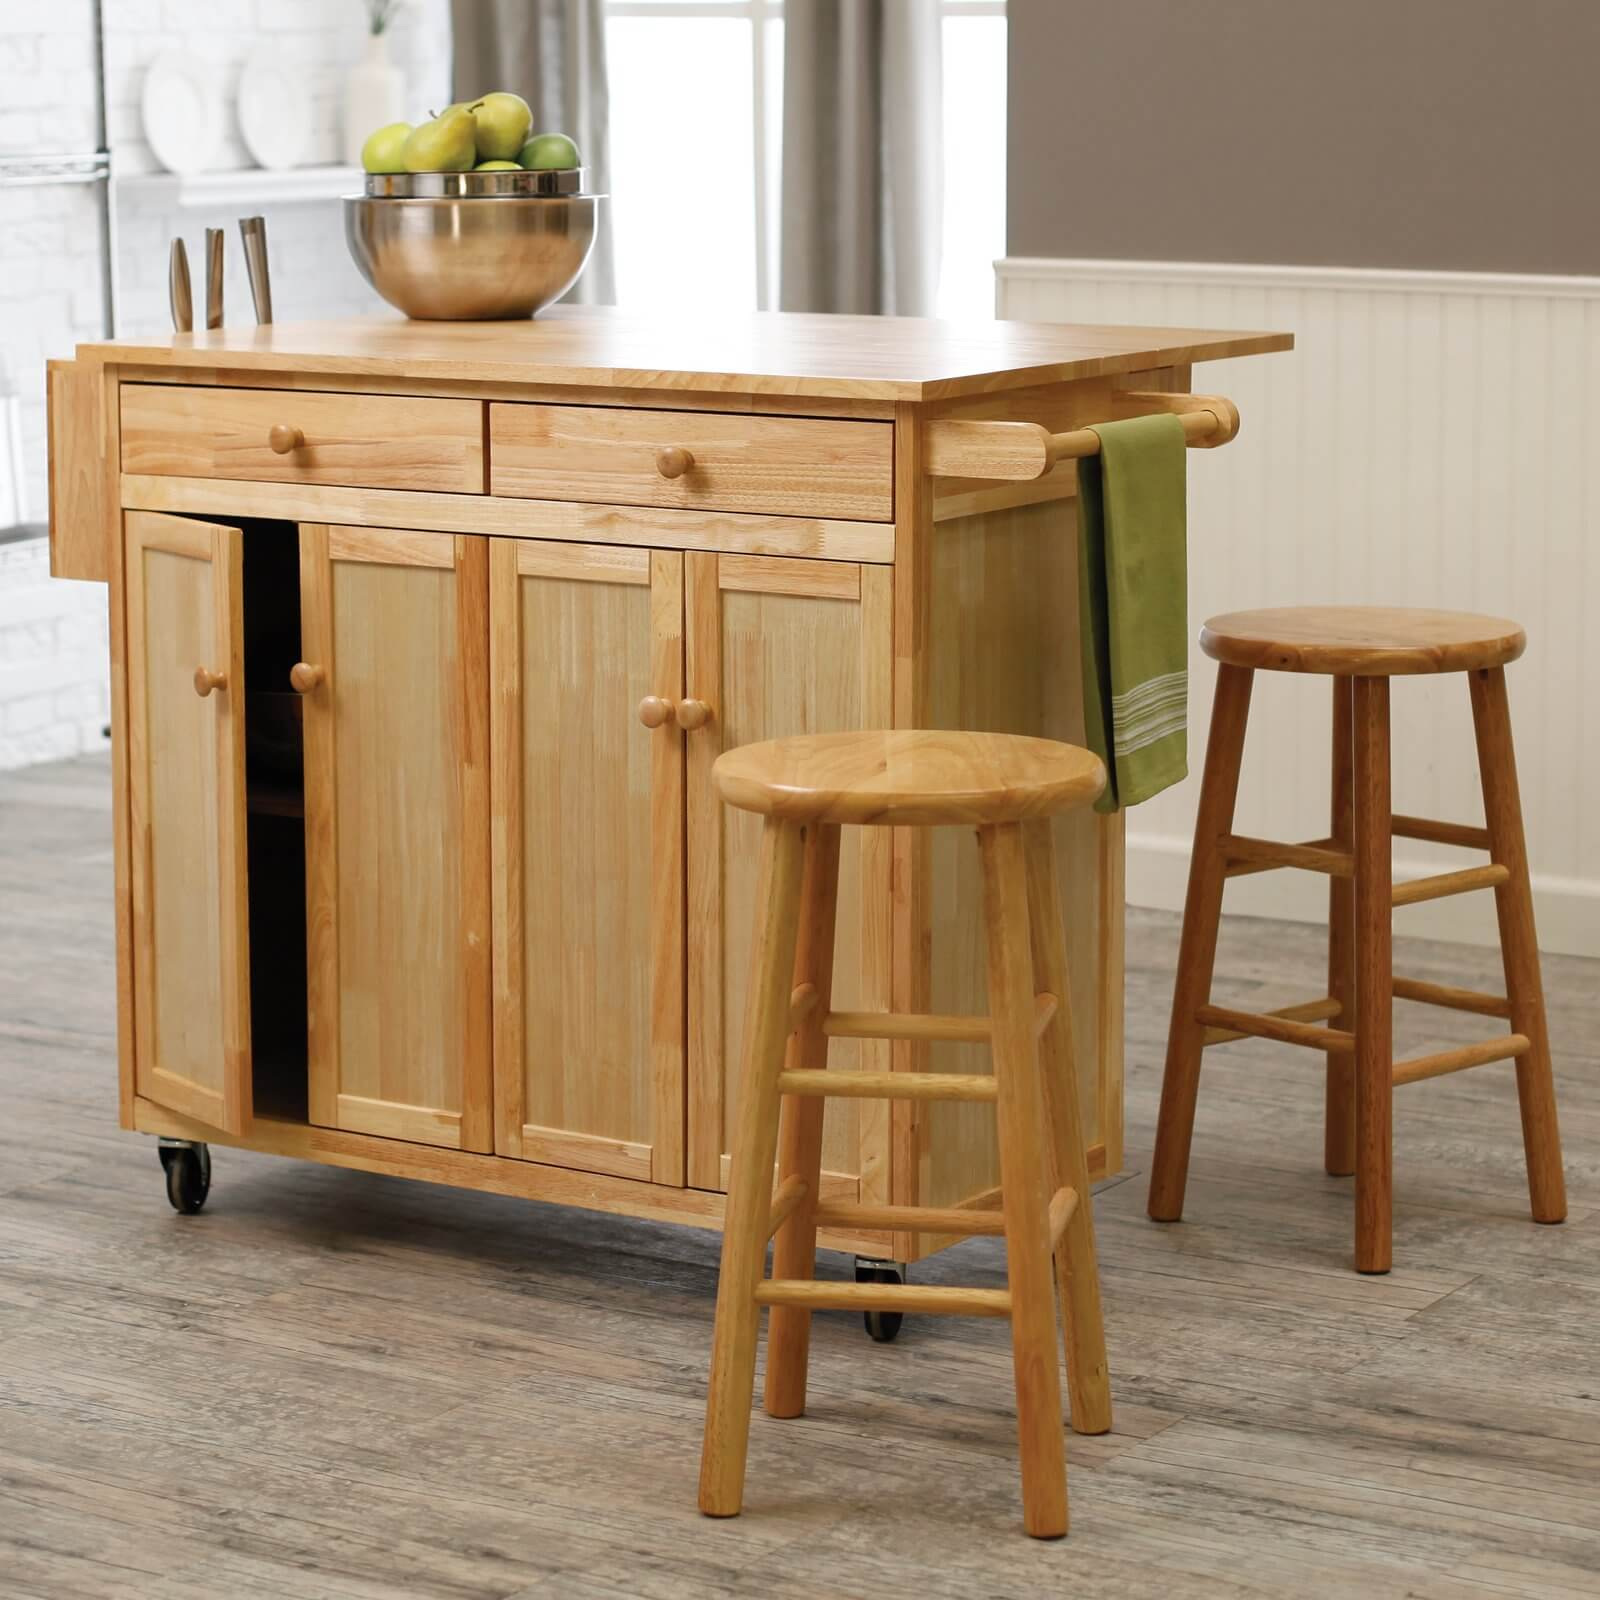 kitchen island with wheels 10 types of small kitchen islands on wheels 9244